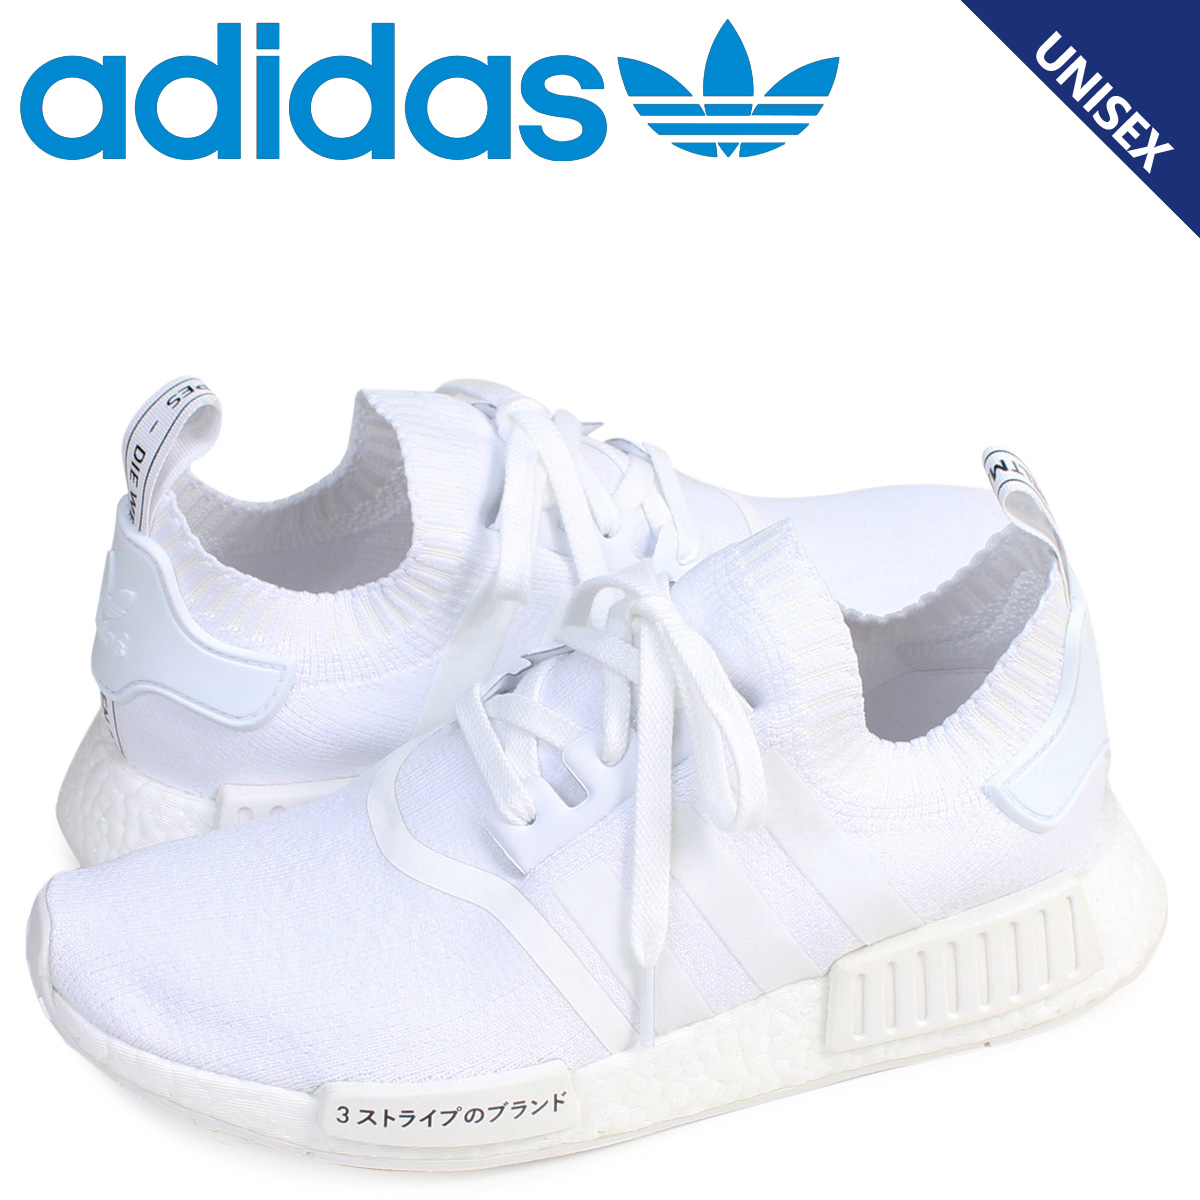 c135147a4 Adidas NMD R1 adidas originals sneakers N M D nomad PK men BZ0221 shoes  white  load planned Shinnyu load in reservation product 8 12 containing